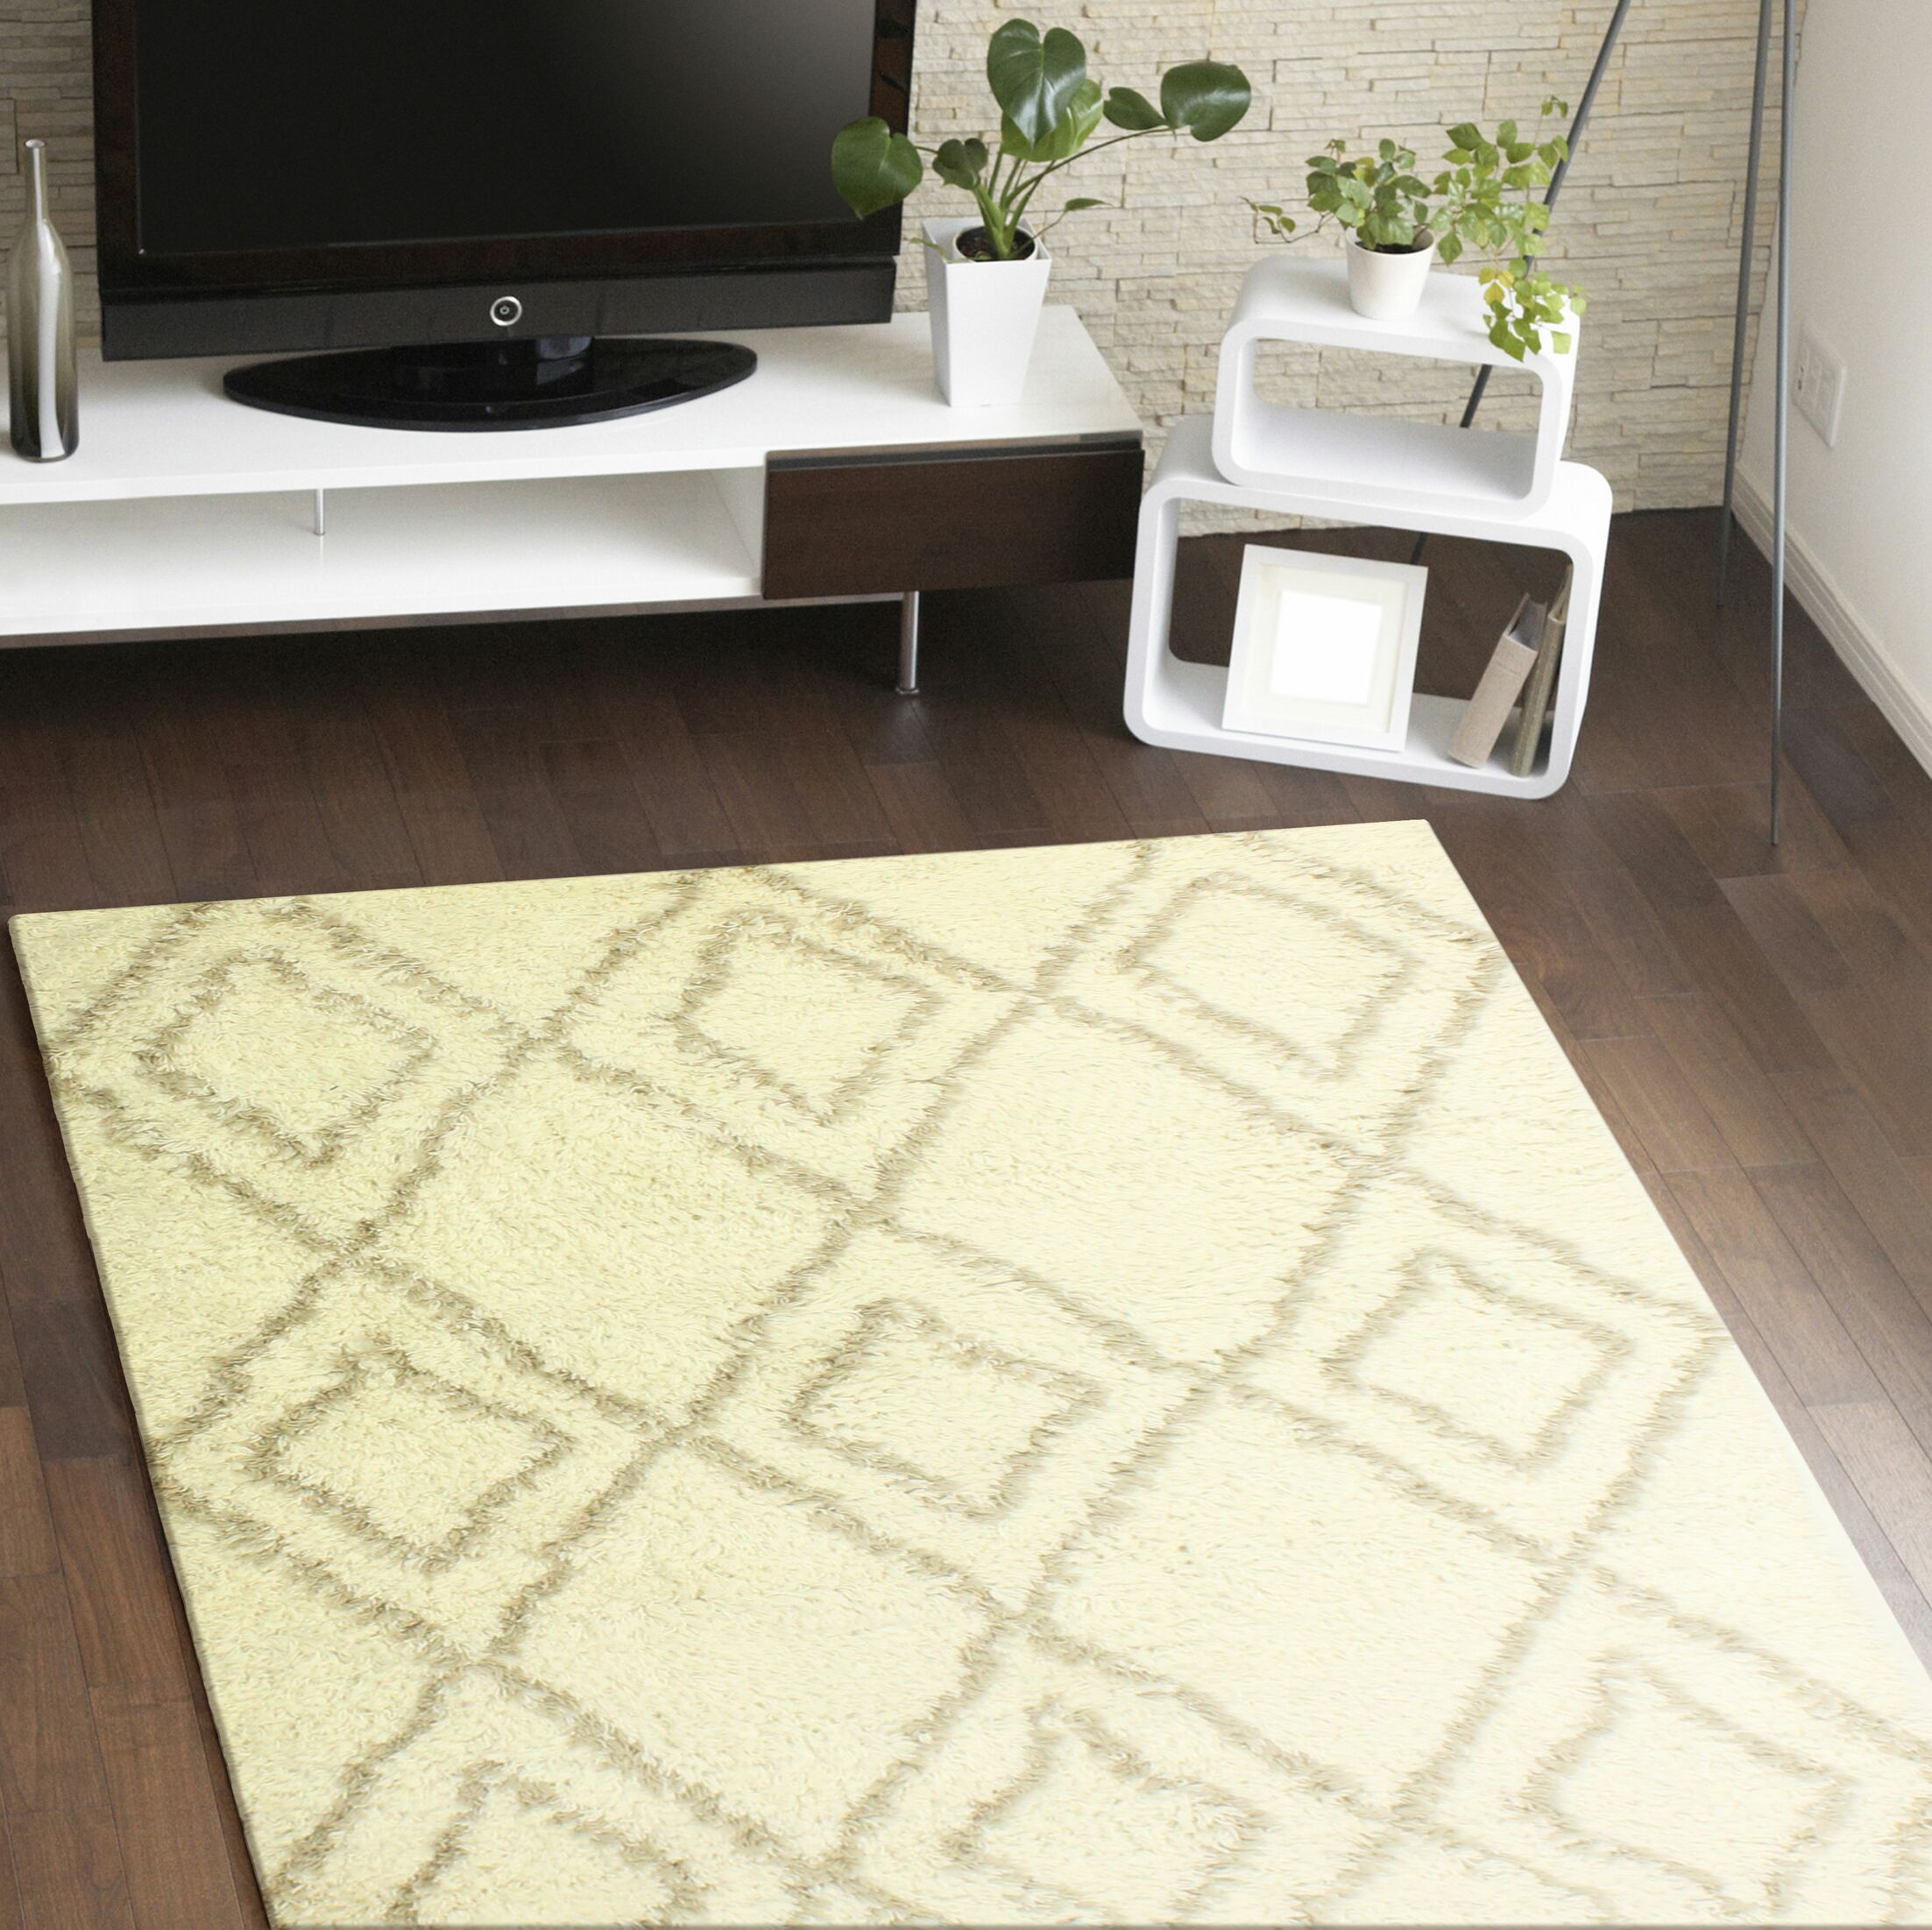 Lavedan Wool Hand-Knotted Ivory/Beige Area Rug Rug Size: 7'6